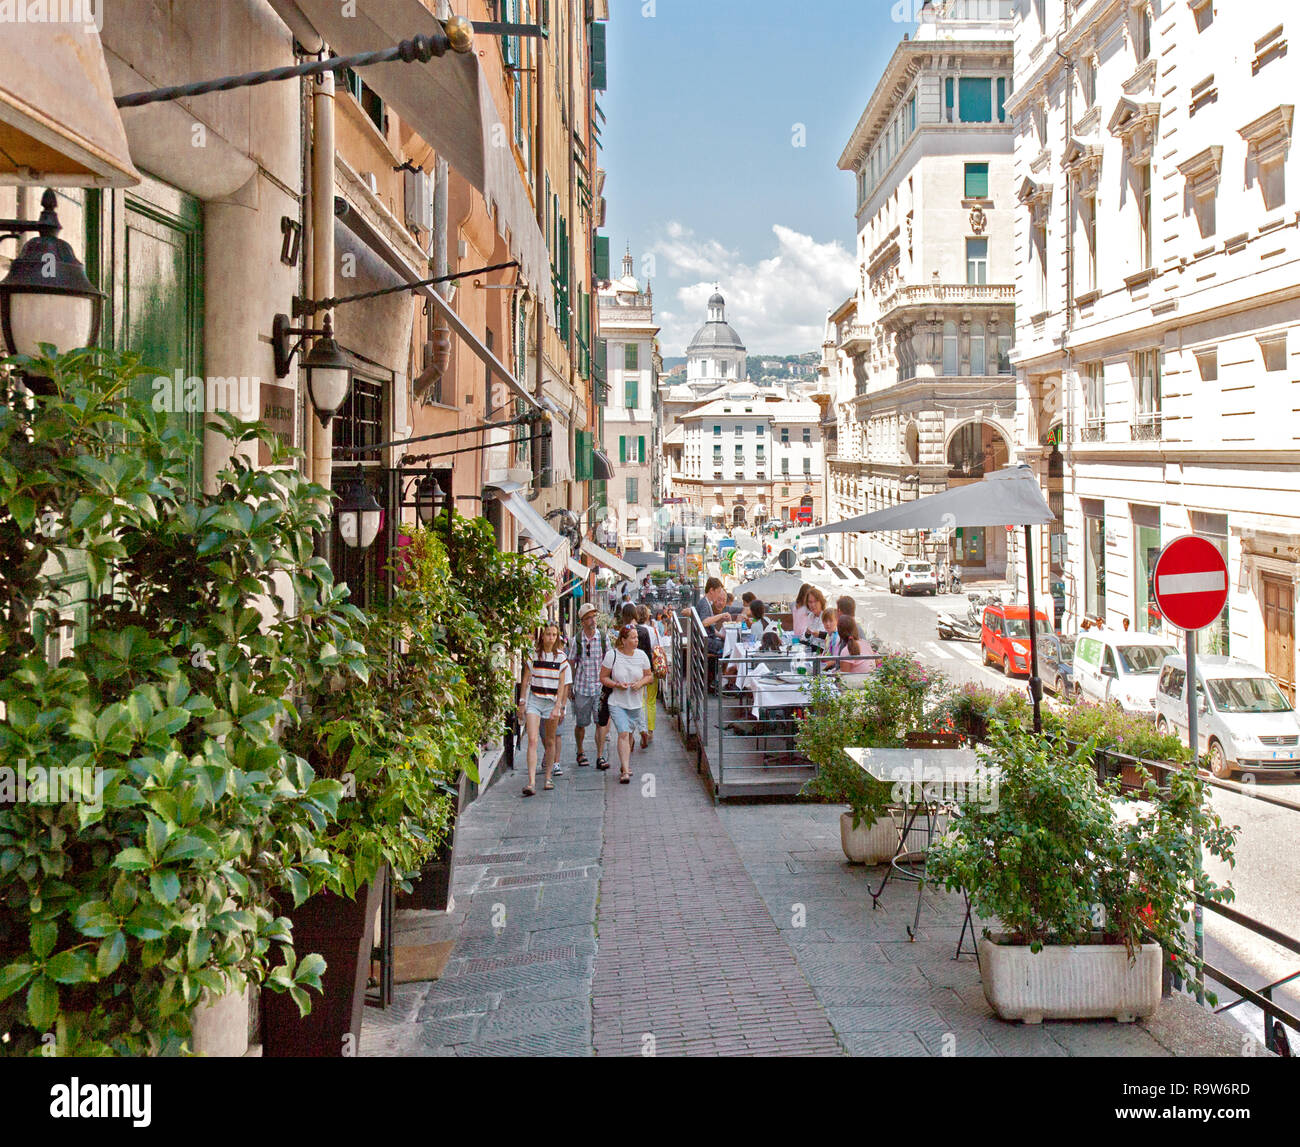 Genoa Italy High Resolution Stock Photography And Images Alamy